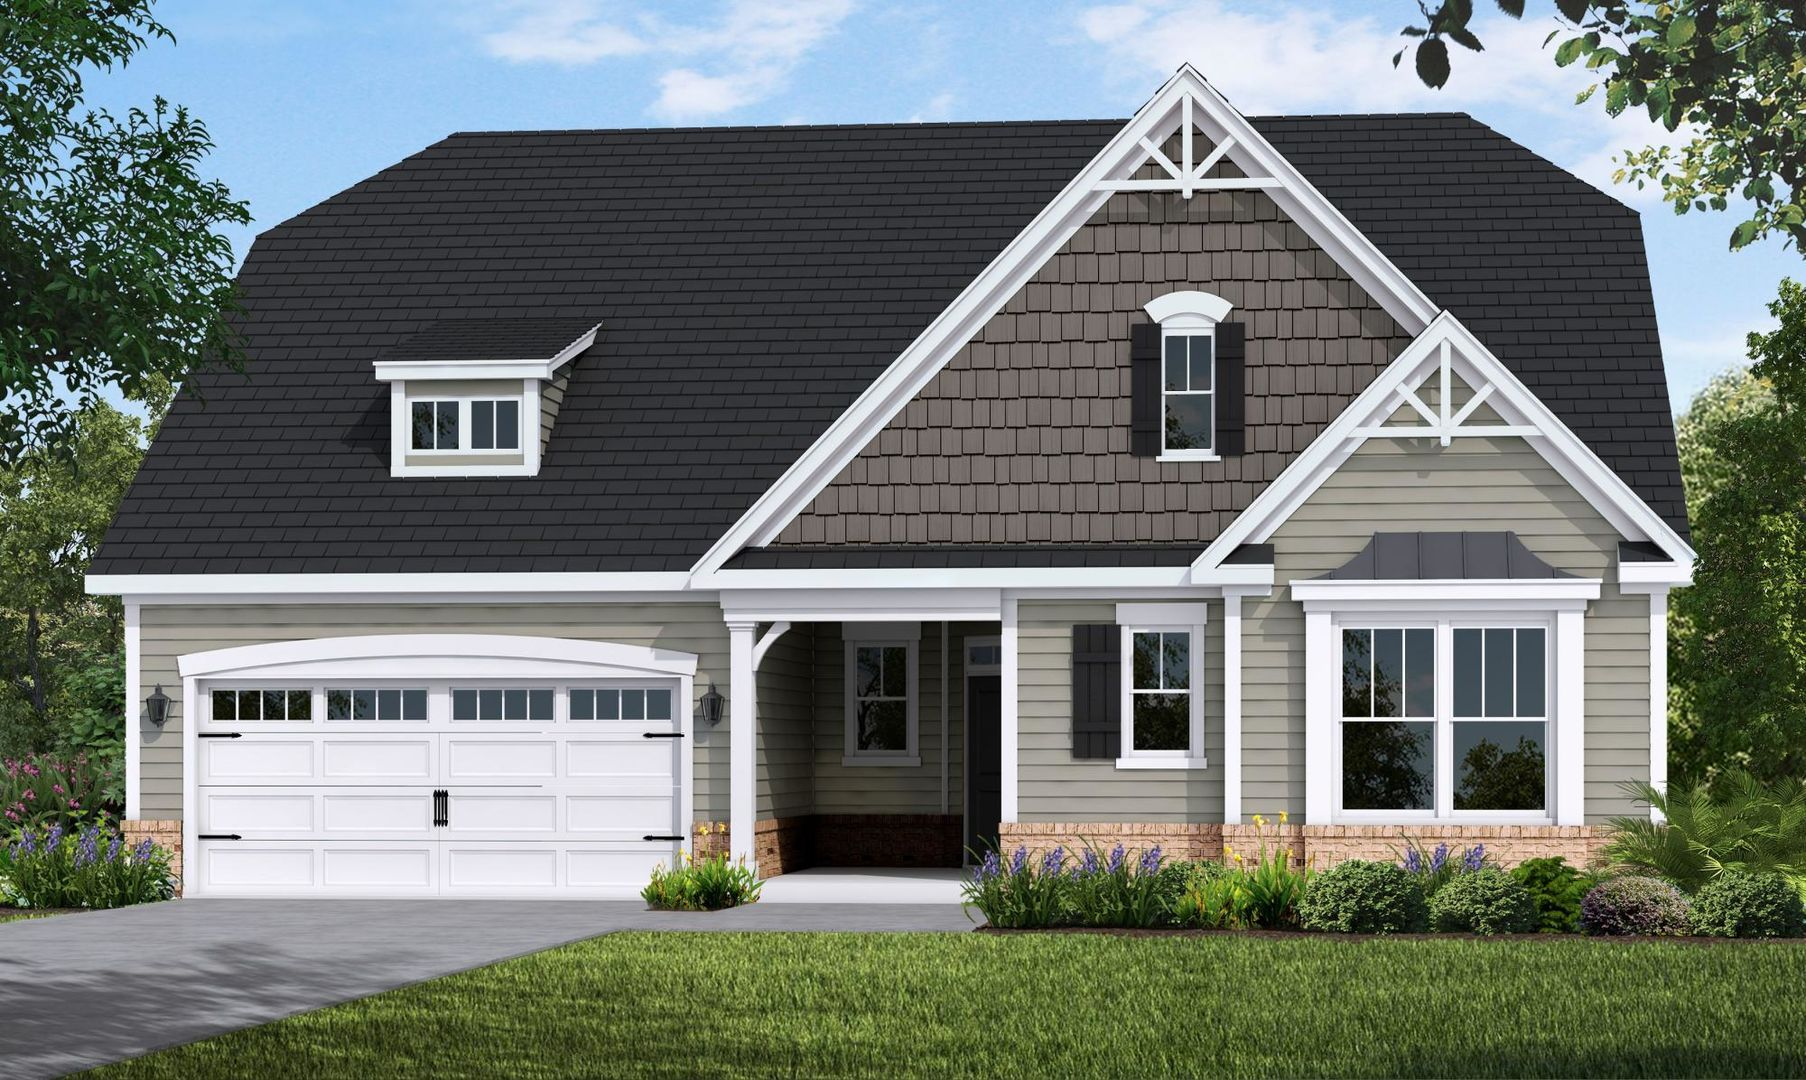 Exterior:Surfside Elevation - C-2compress